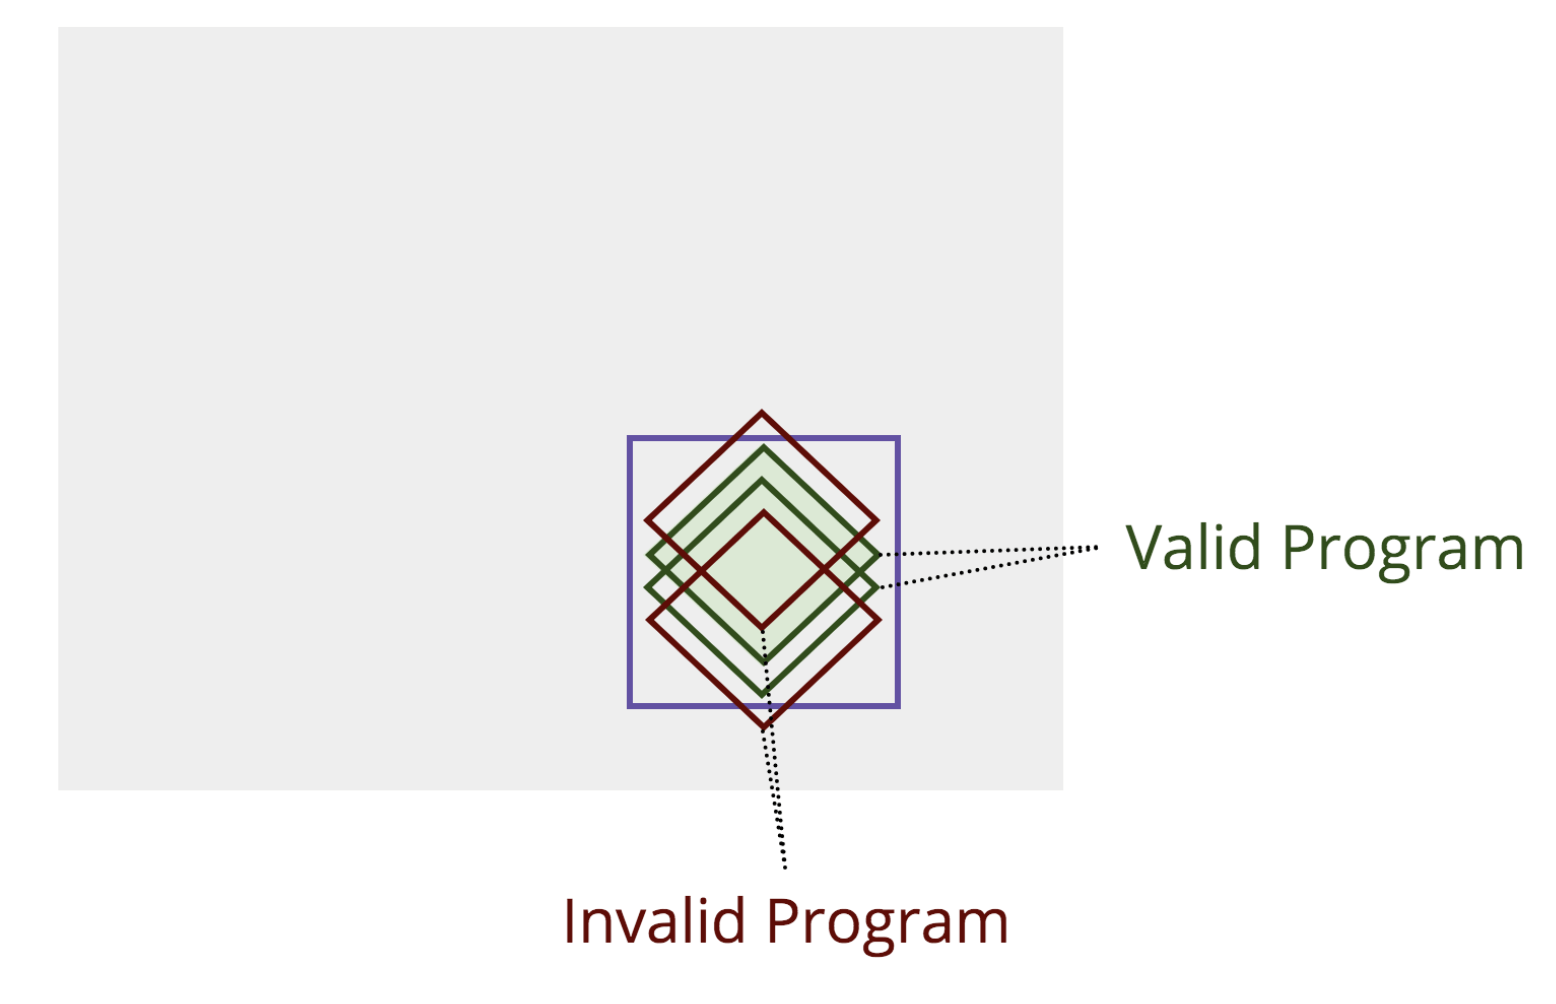 Several more different colored borders are added to the diamond in the chart to represent different tests. Any tests outside of the purple box that was drawn earlier are considered invalid.